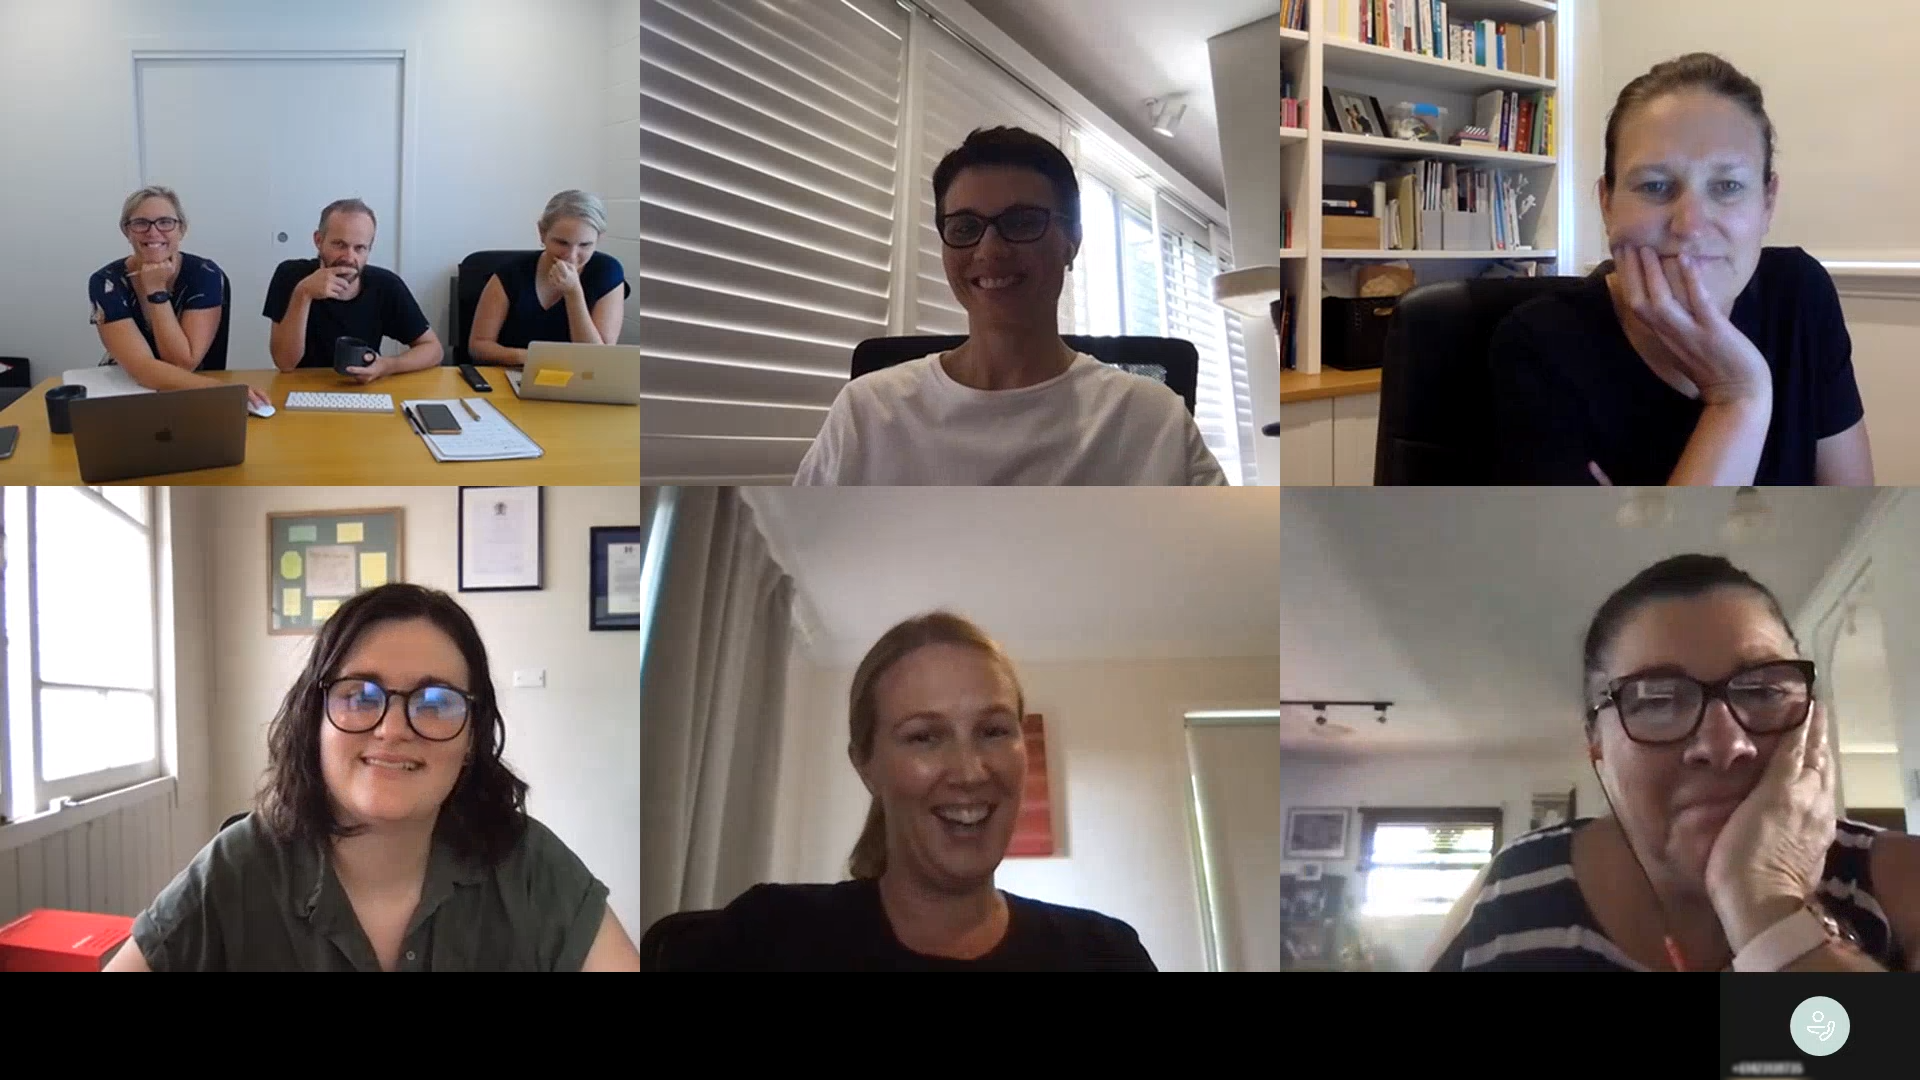 Screenshot of a Microsoft teams video call separated into six participants. In the top left there three people wearing black at a conference table, in the top middle there is a woman in glasses and a white shirt in front of window blinds, in the top right there is a woman in a black shirt with bookshelves behind her, in the bottom left is Alix with a window and framed pictures behind her, in the bottom middle is a blond woman in a black shirt speaking, and in the bottom right is a woman in a black and white striped shirt with glasses.